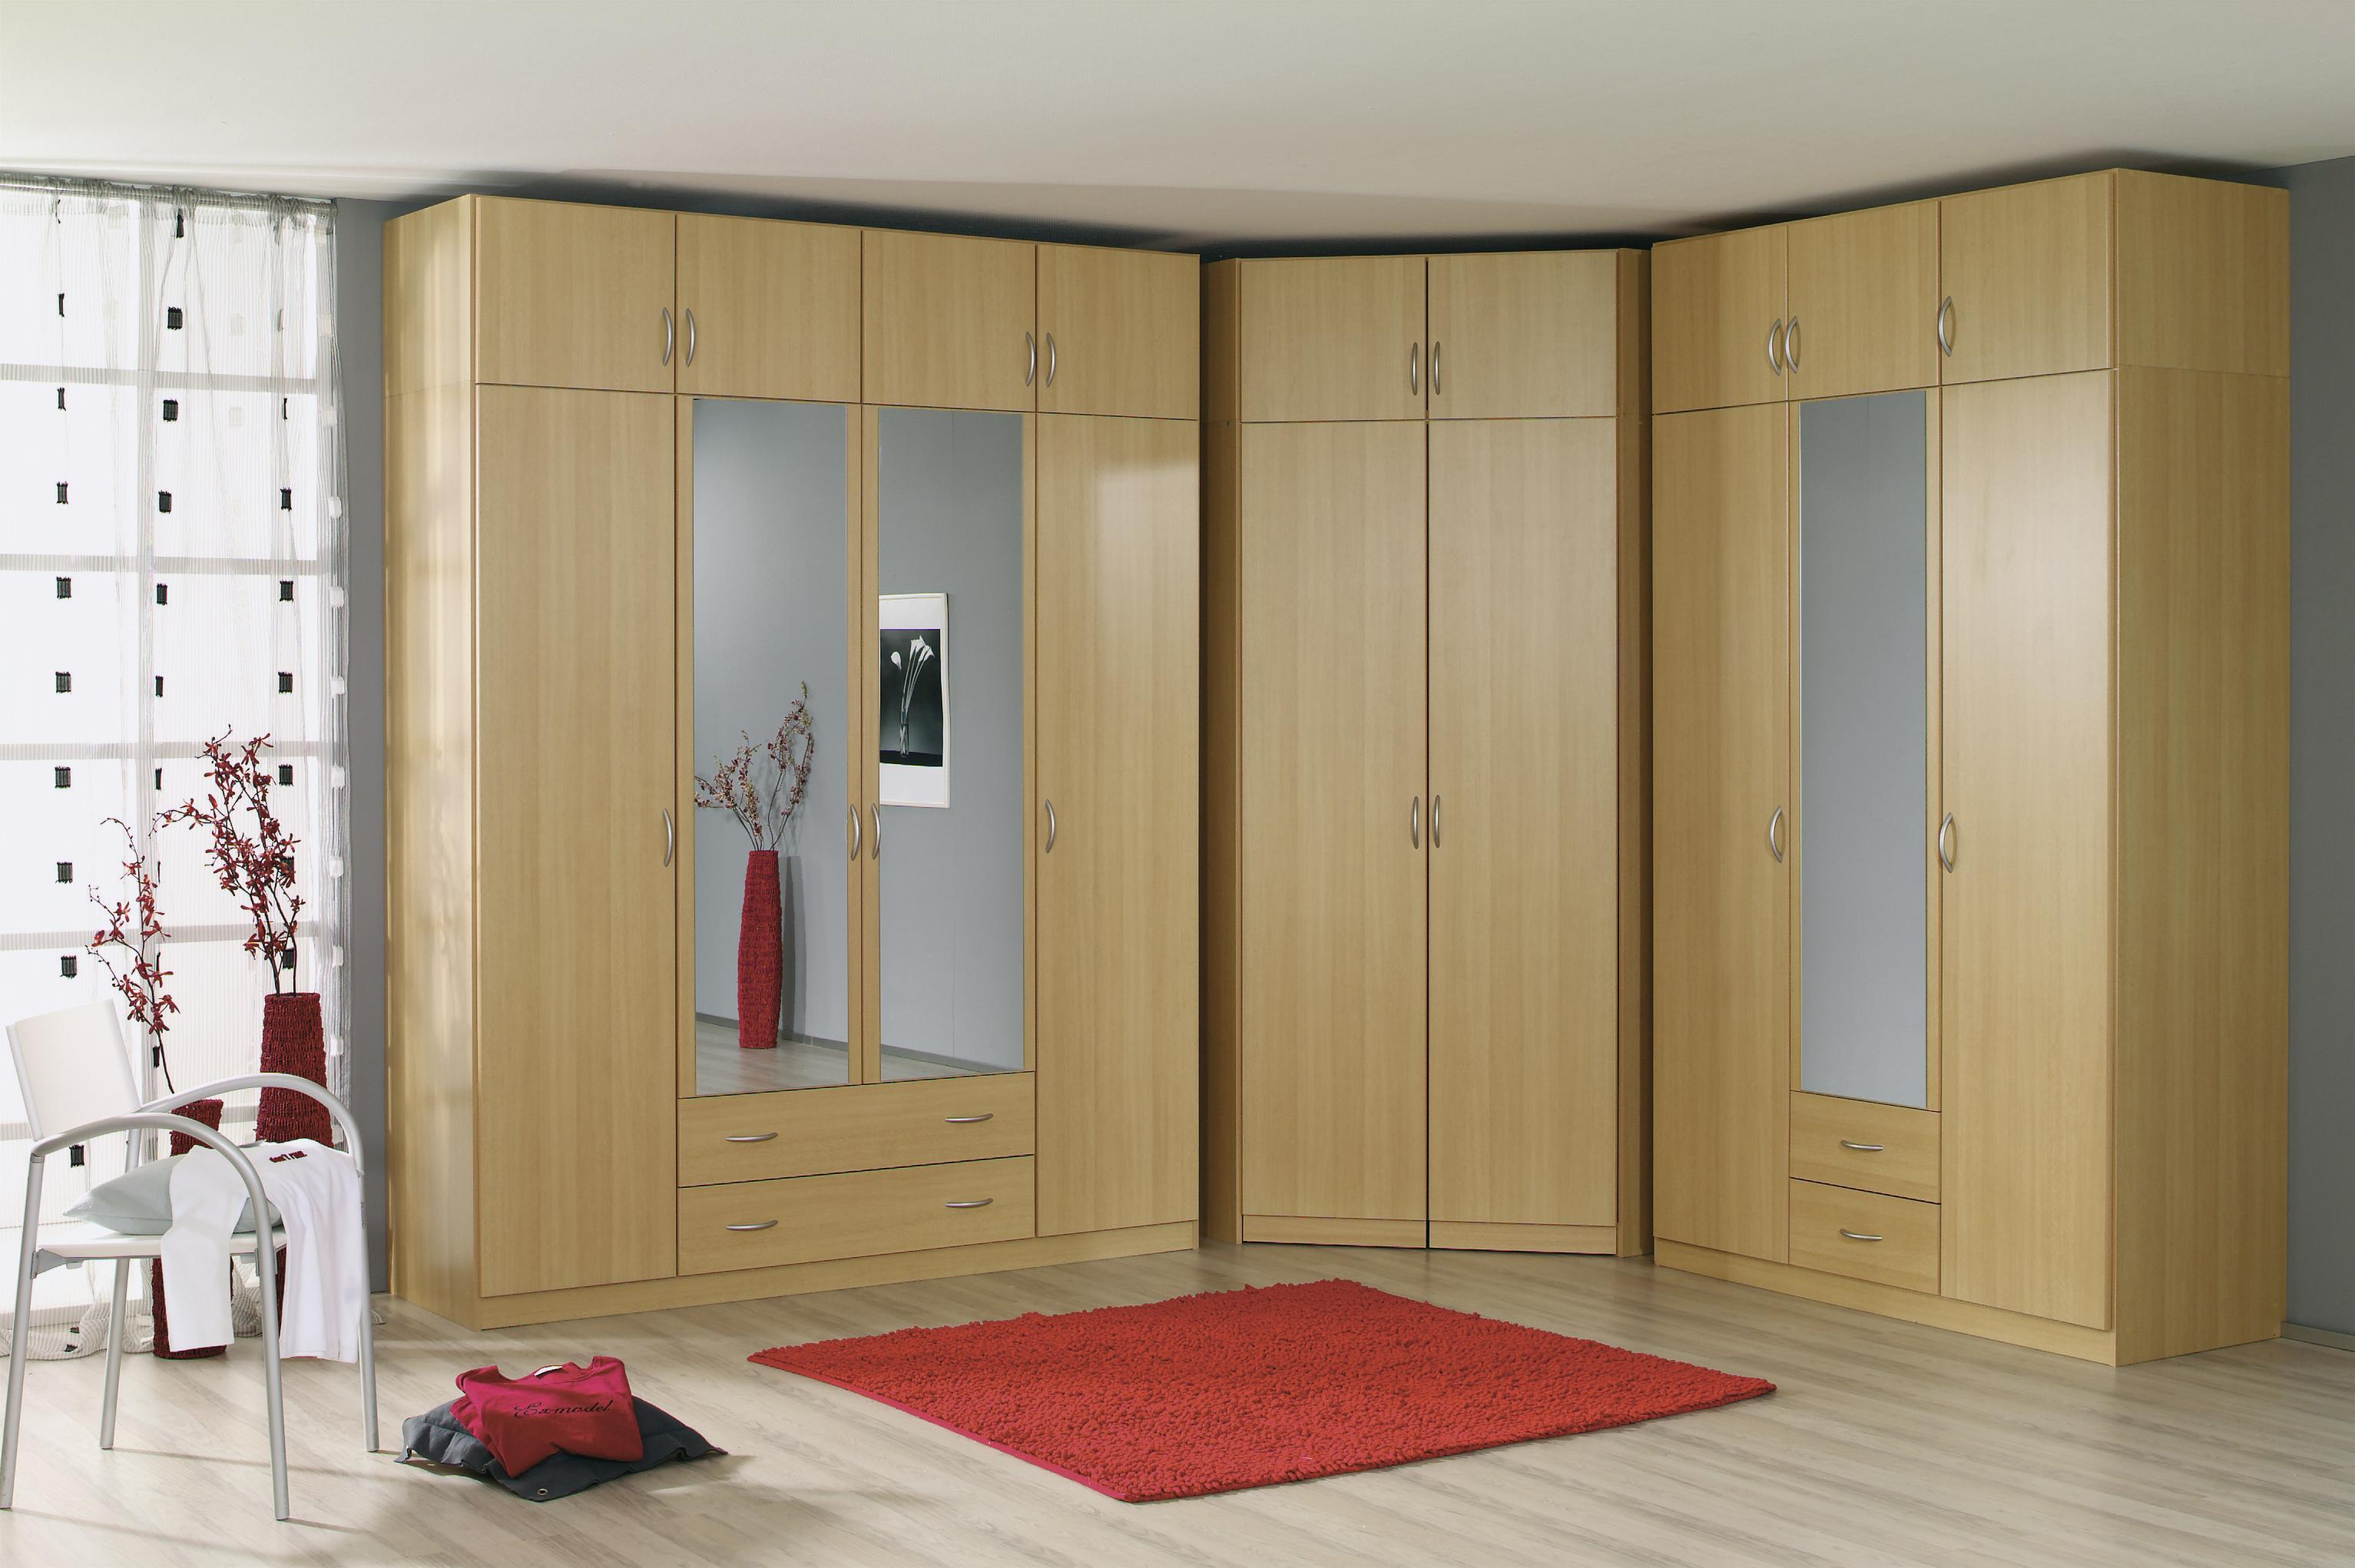 rauch eck kleiderschrank case begehbar 117 x 117 cm ebay. Black Bedroom Furniture Sets. Home Design Ideas